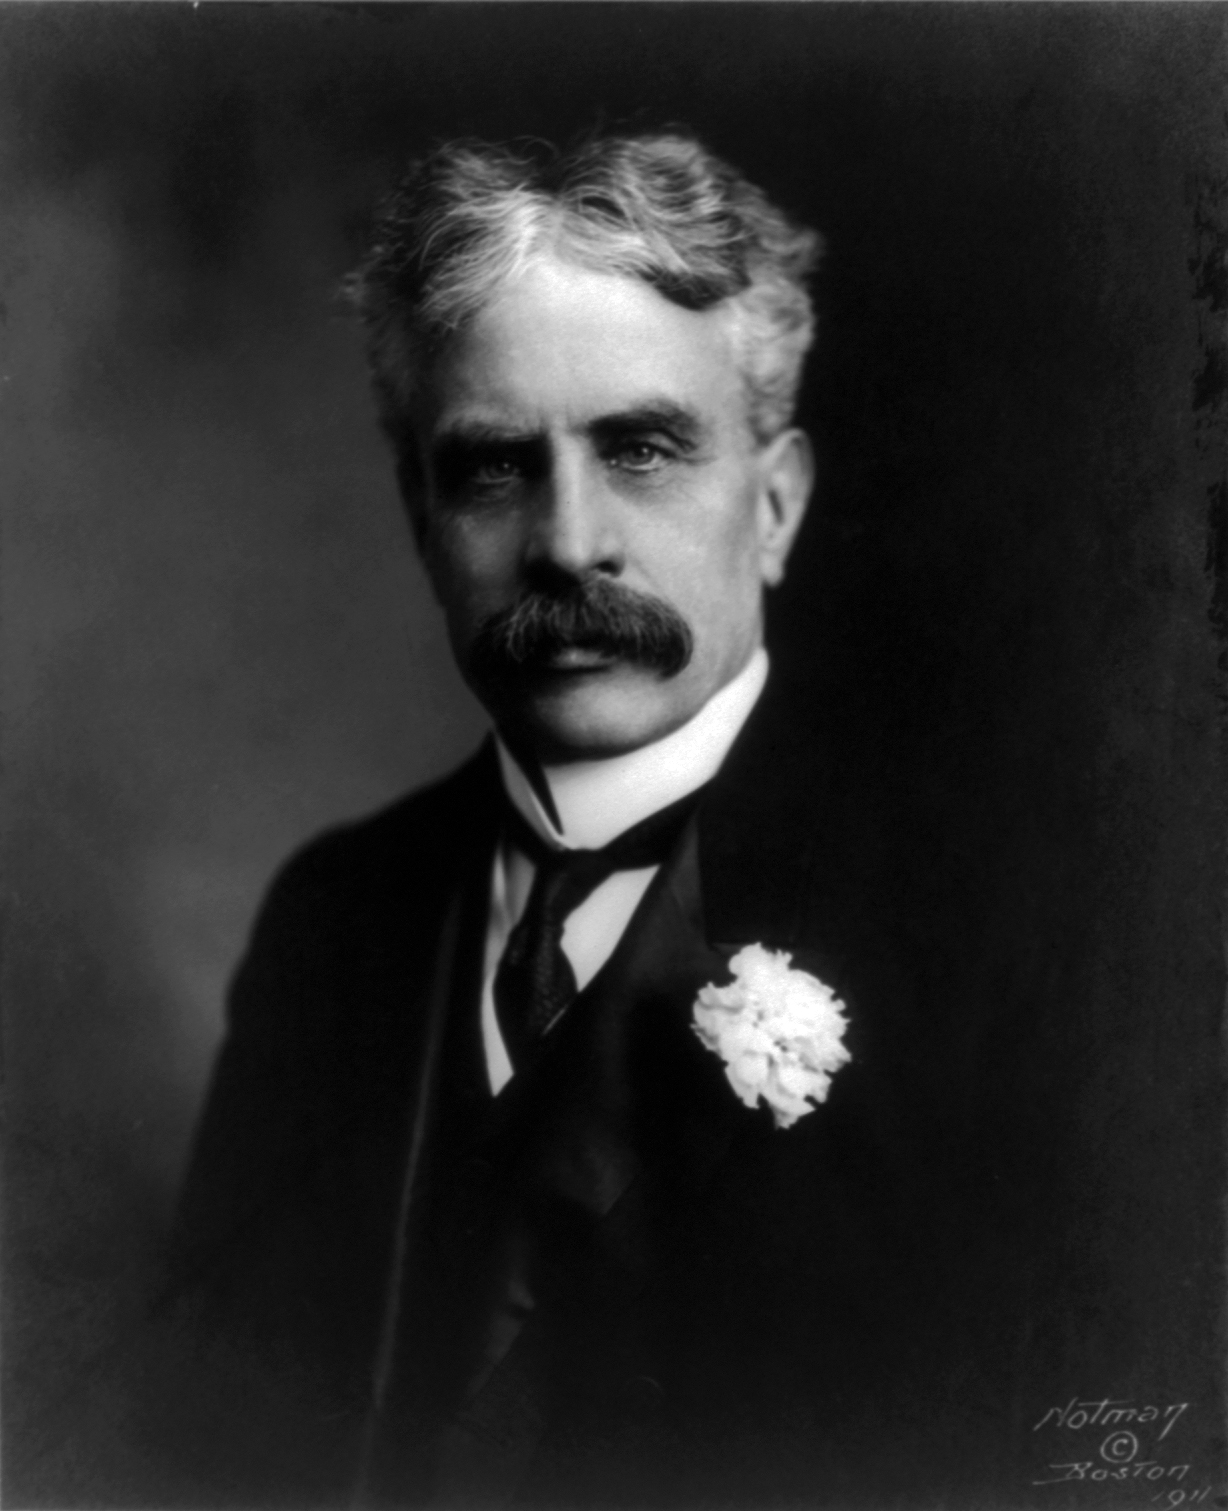 Essays On English Literature English Sir Robert Borden Th Prime Minister Of Canada English Essays also Argumentative Essay Sample High School This Essay Will Talk About The Conscription Crisis That Happened In  Fifth Business Essay